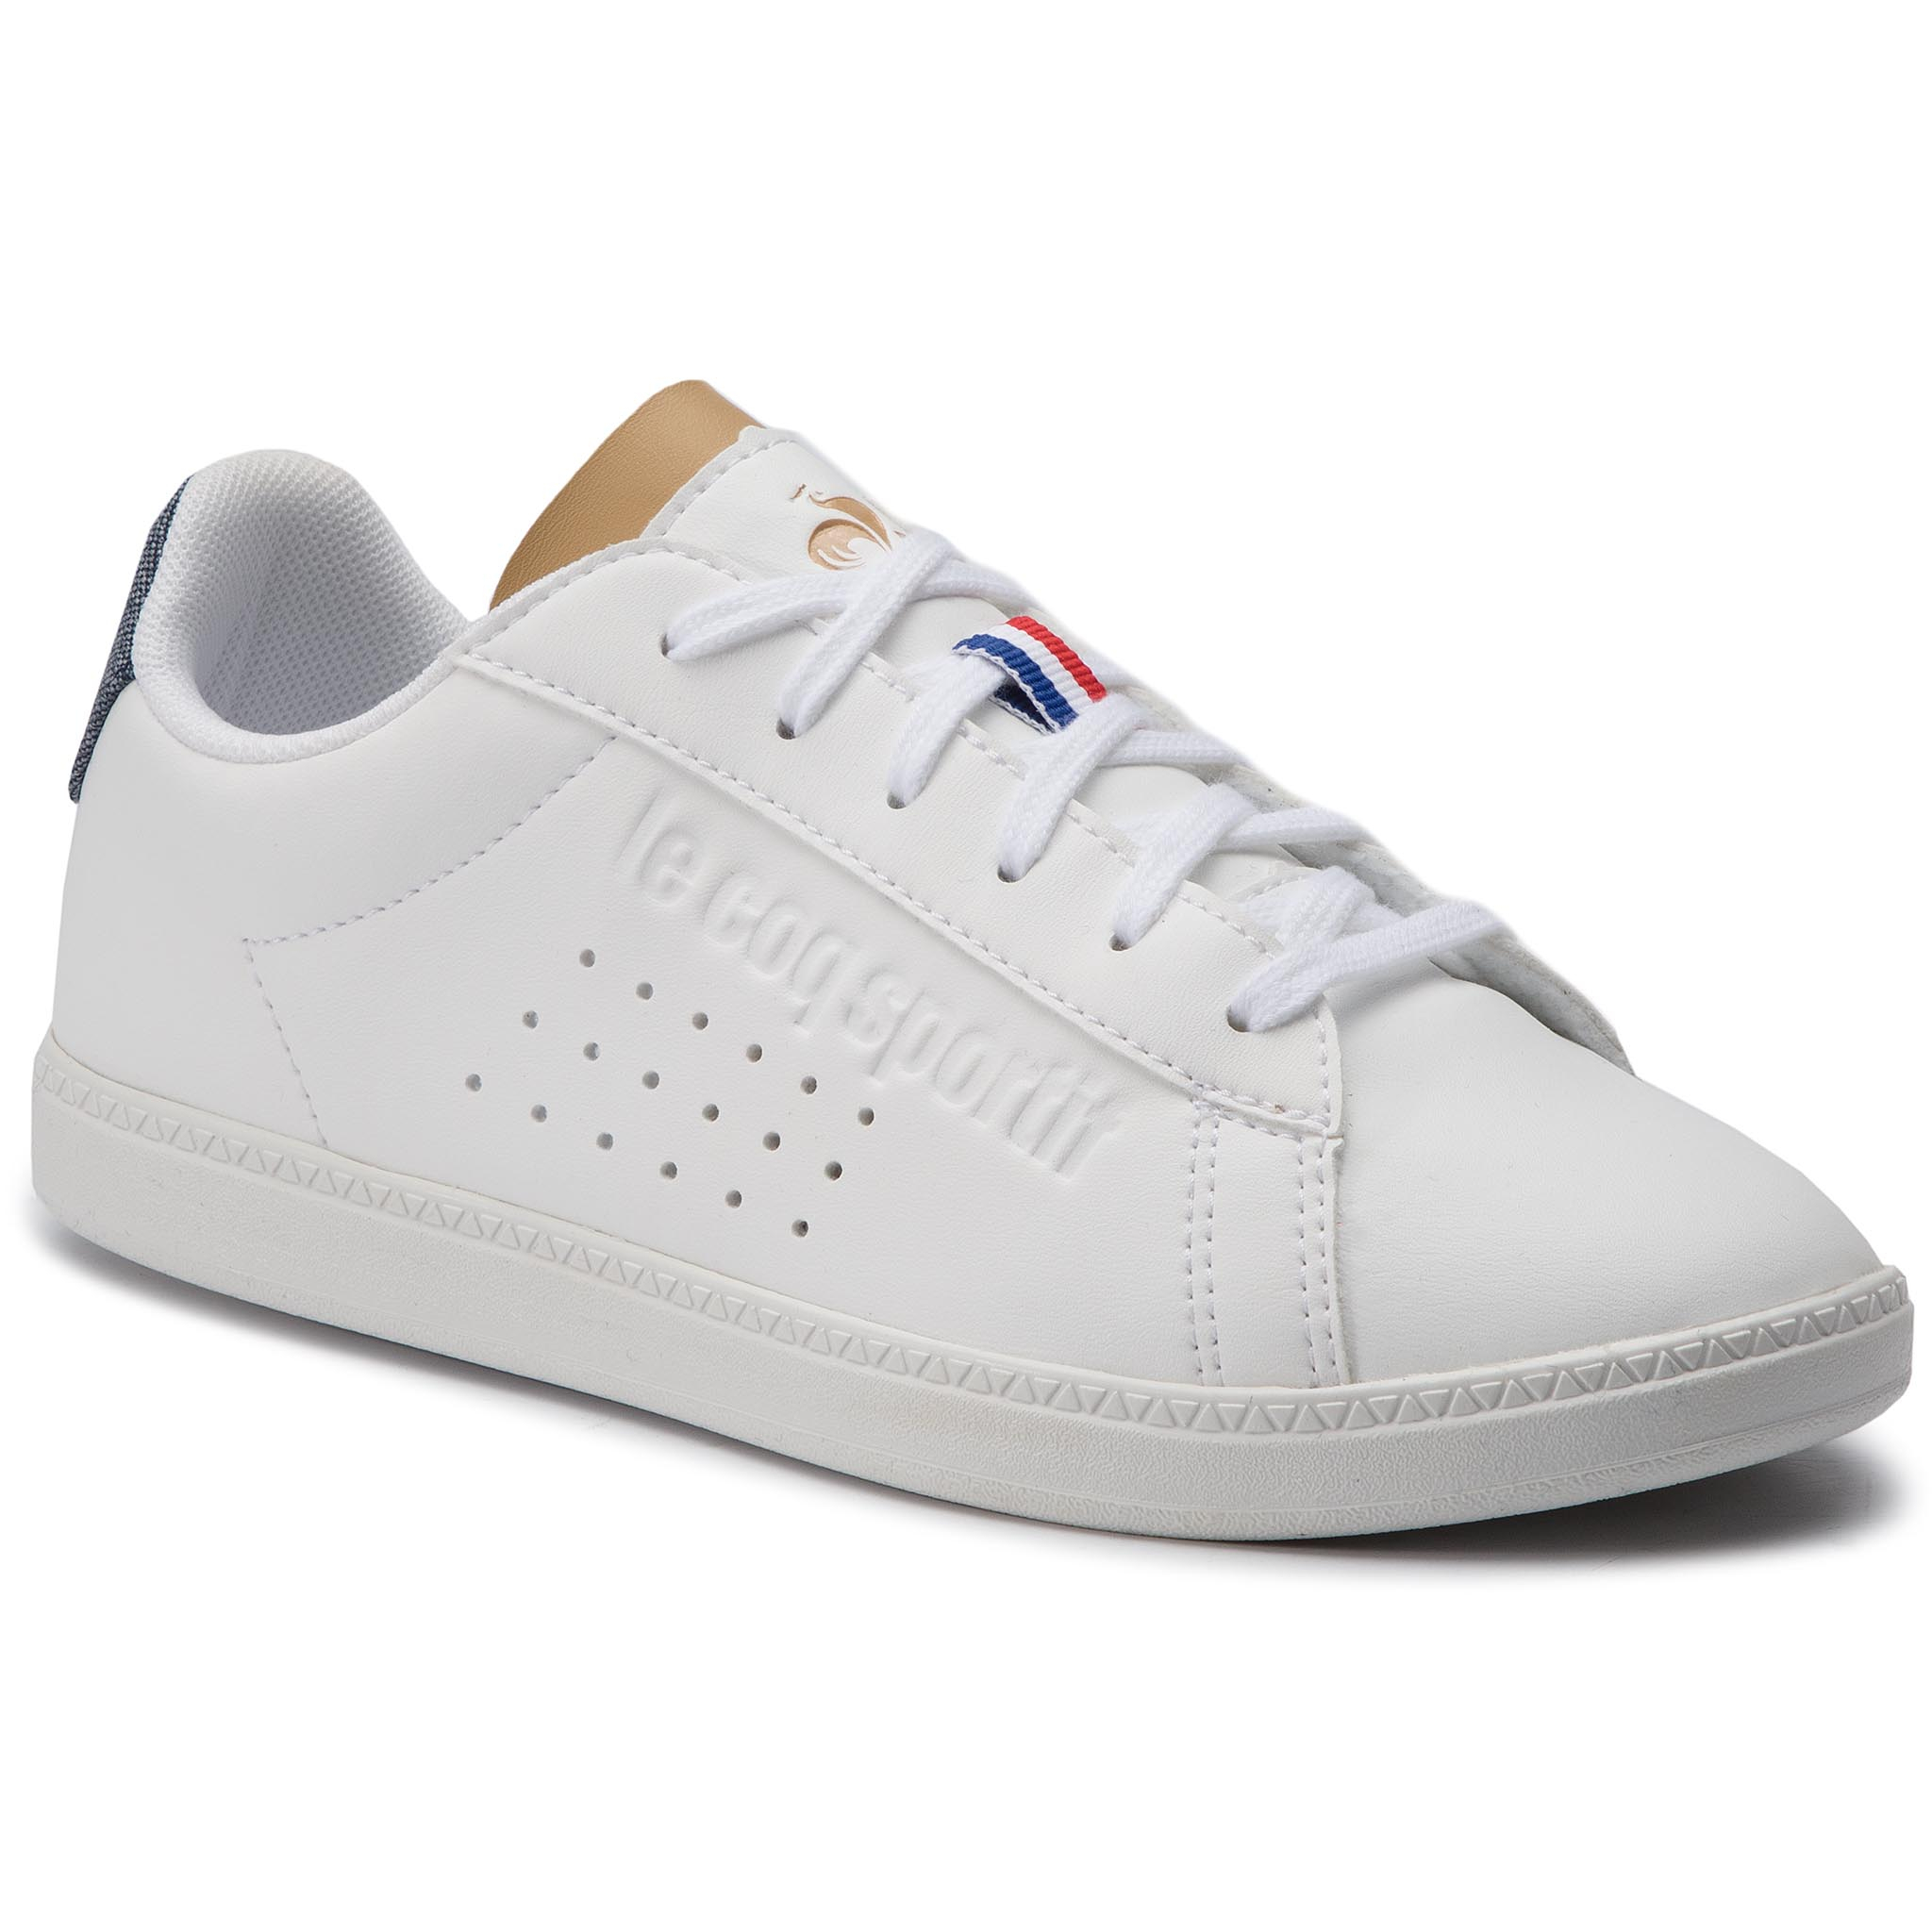 Sneakers LE COQ SPORTIF - Courtset Gs Craft 1910152 Optical White/Croissant